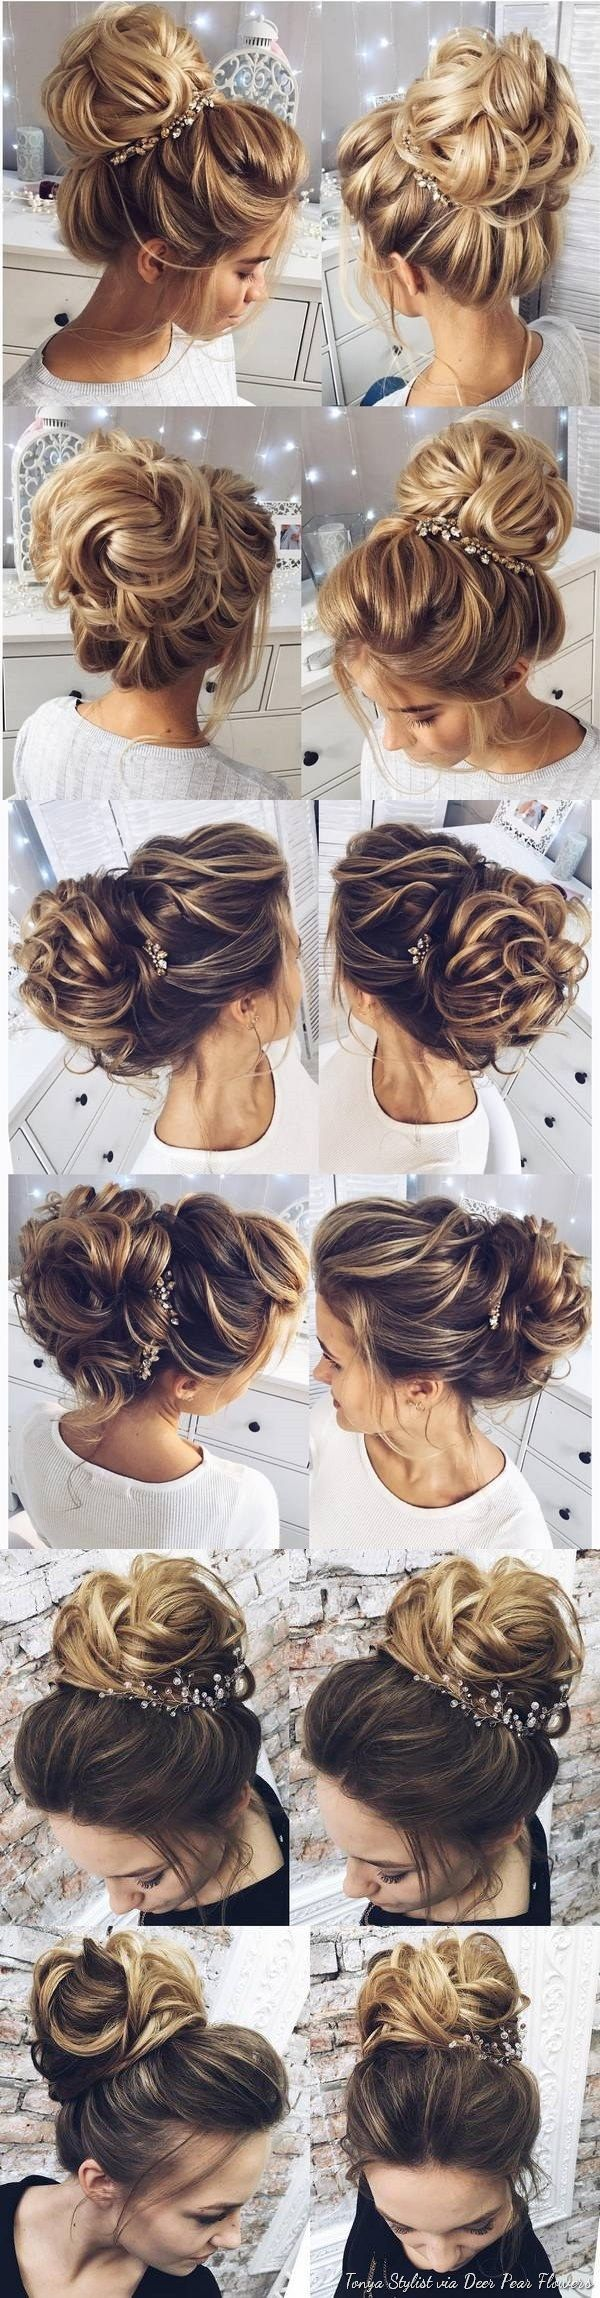 wedding hairstyles for long hair from tonyastylist weddings